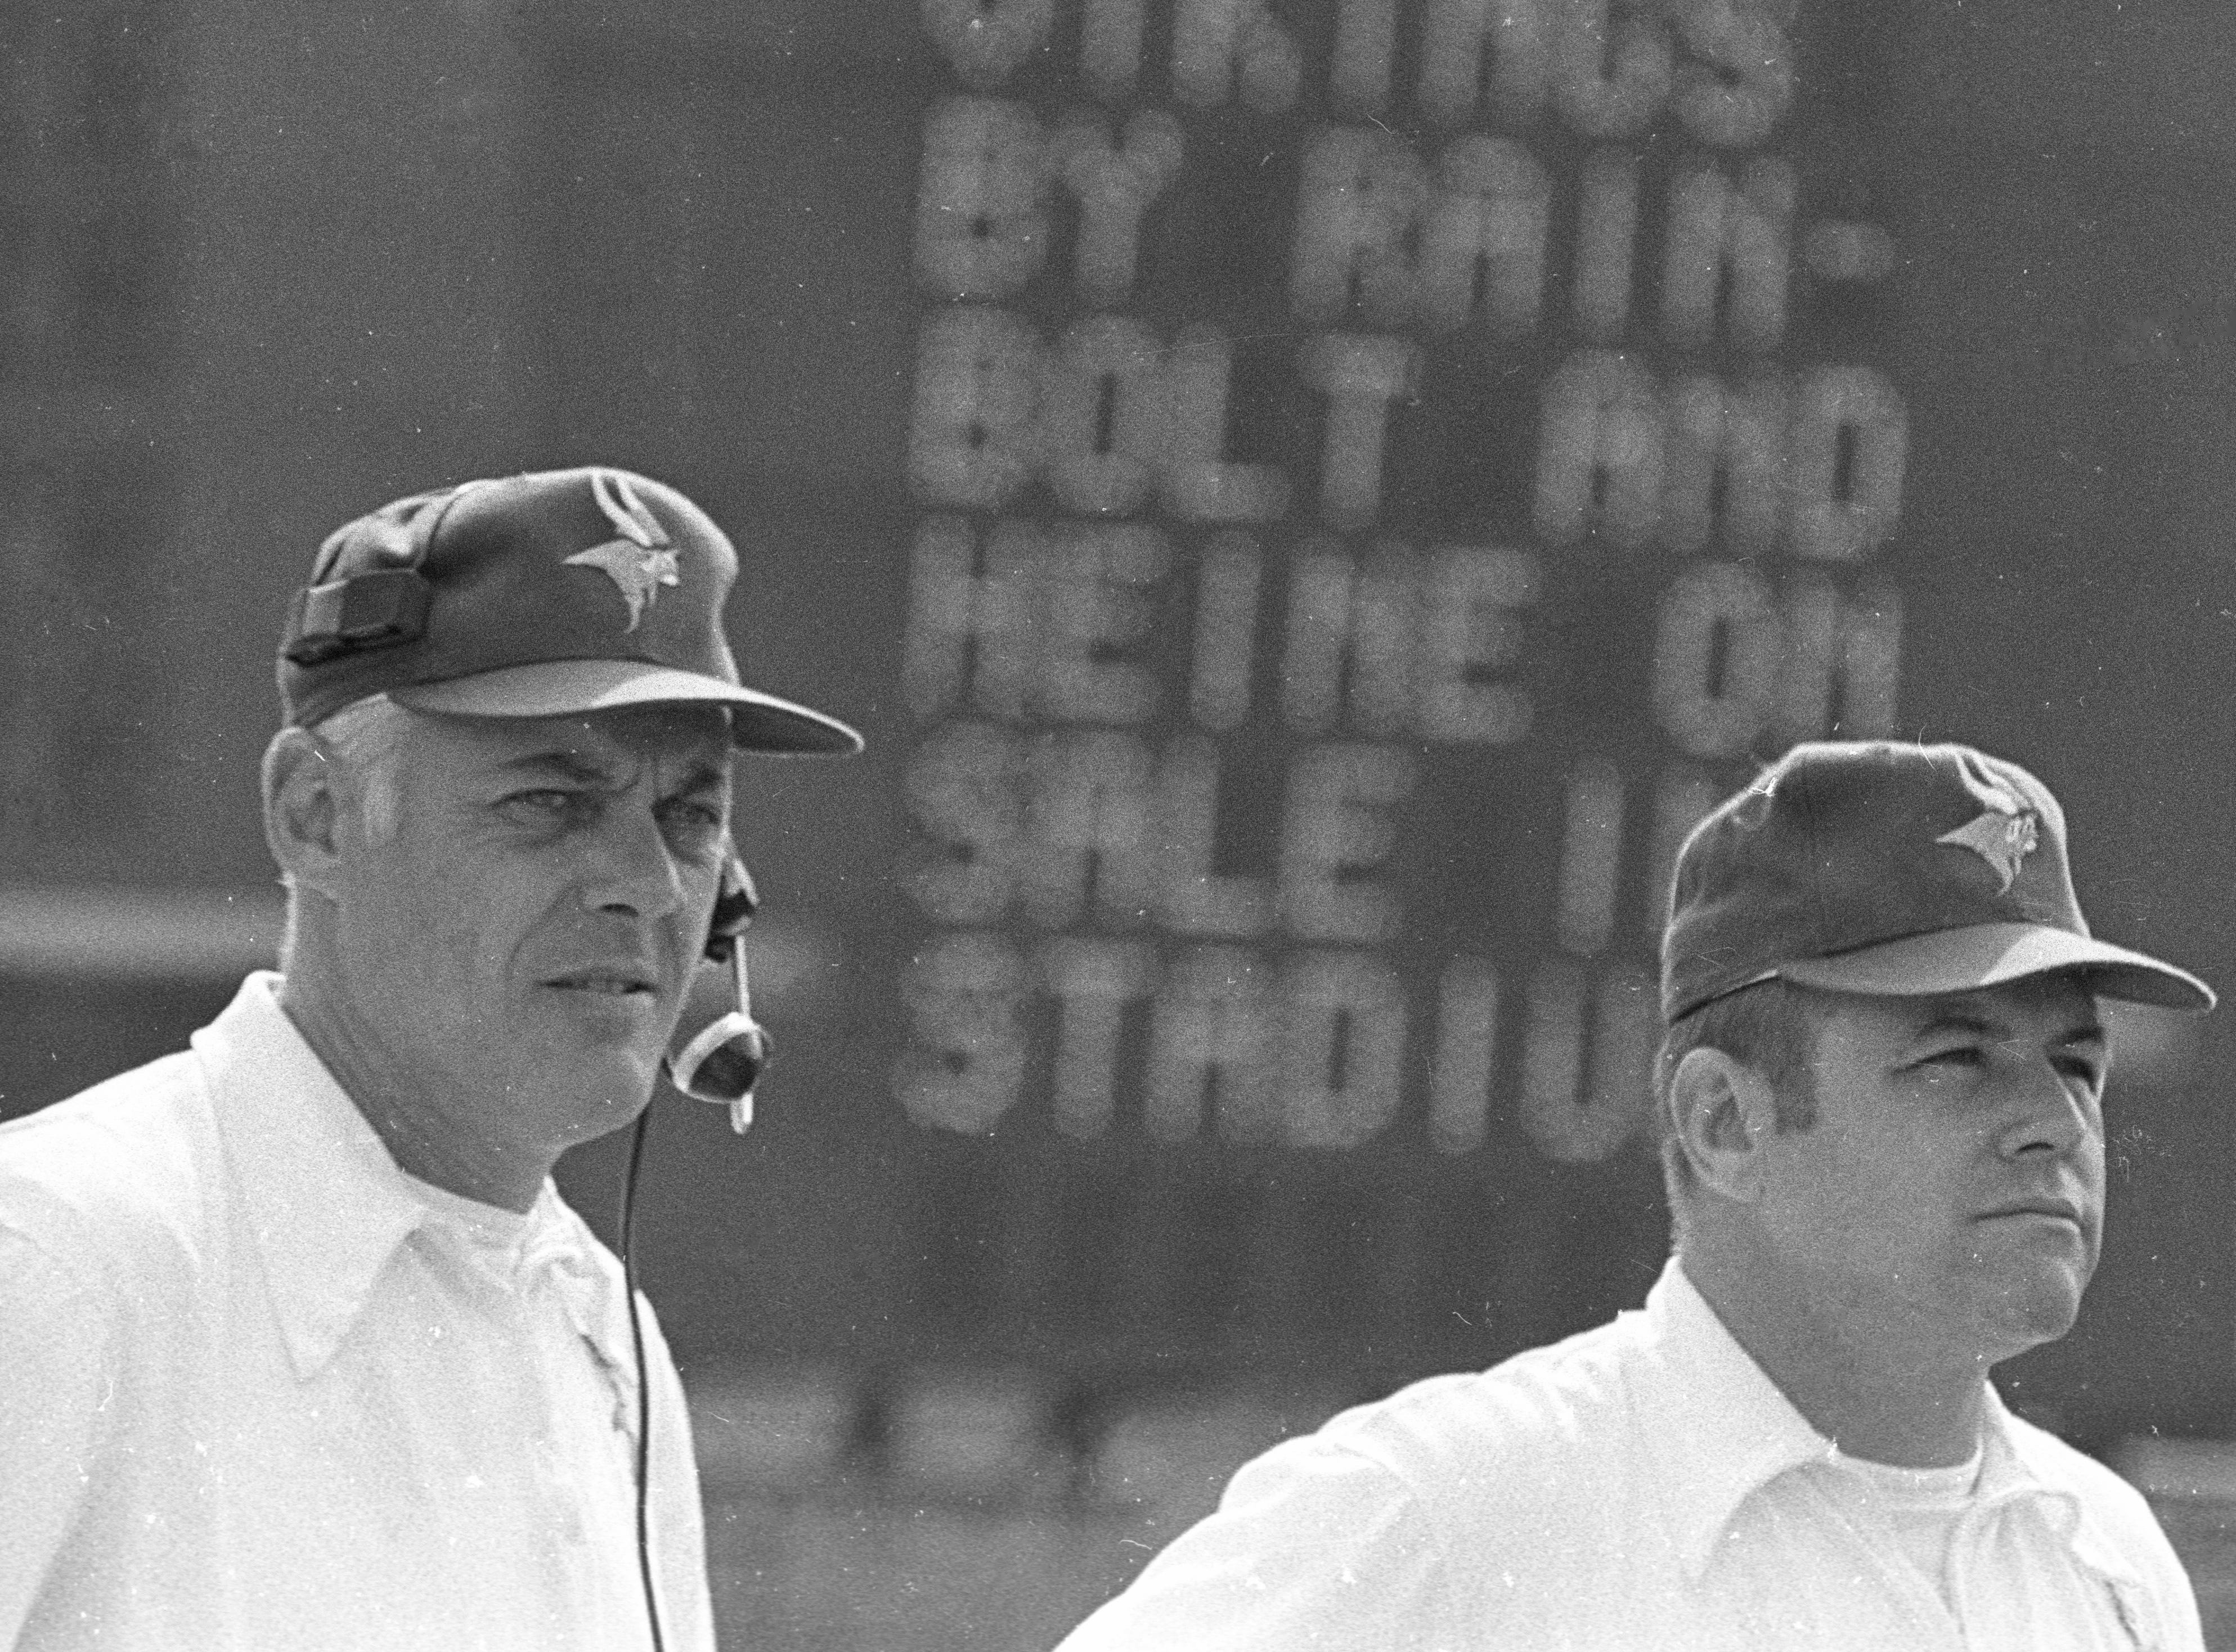 John Michels, right, is shown in an undated photo with Minnesota Vikings coach Bud Grant.